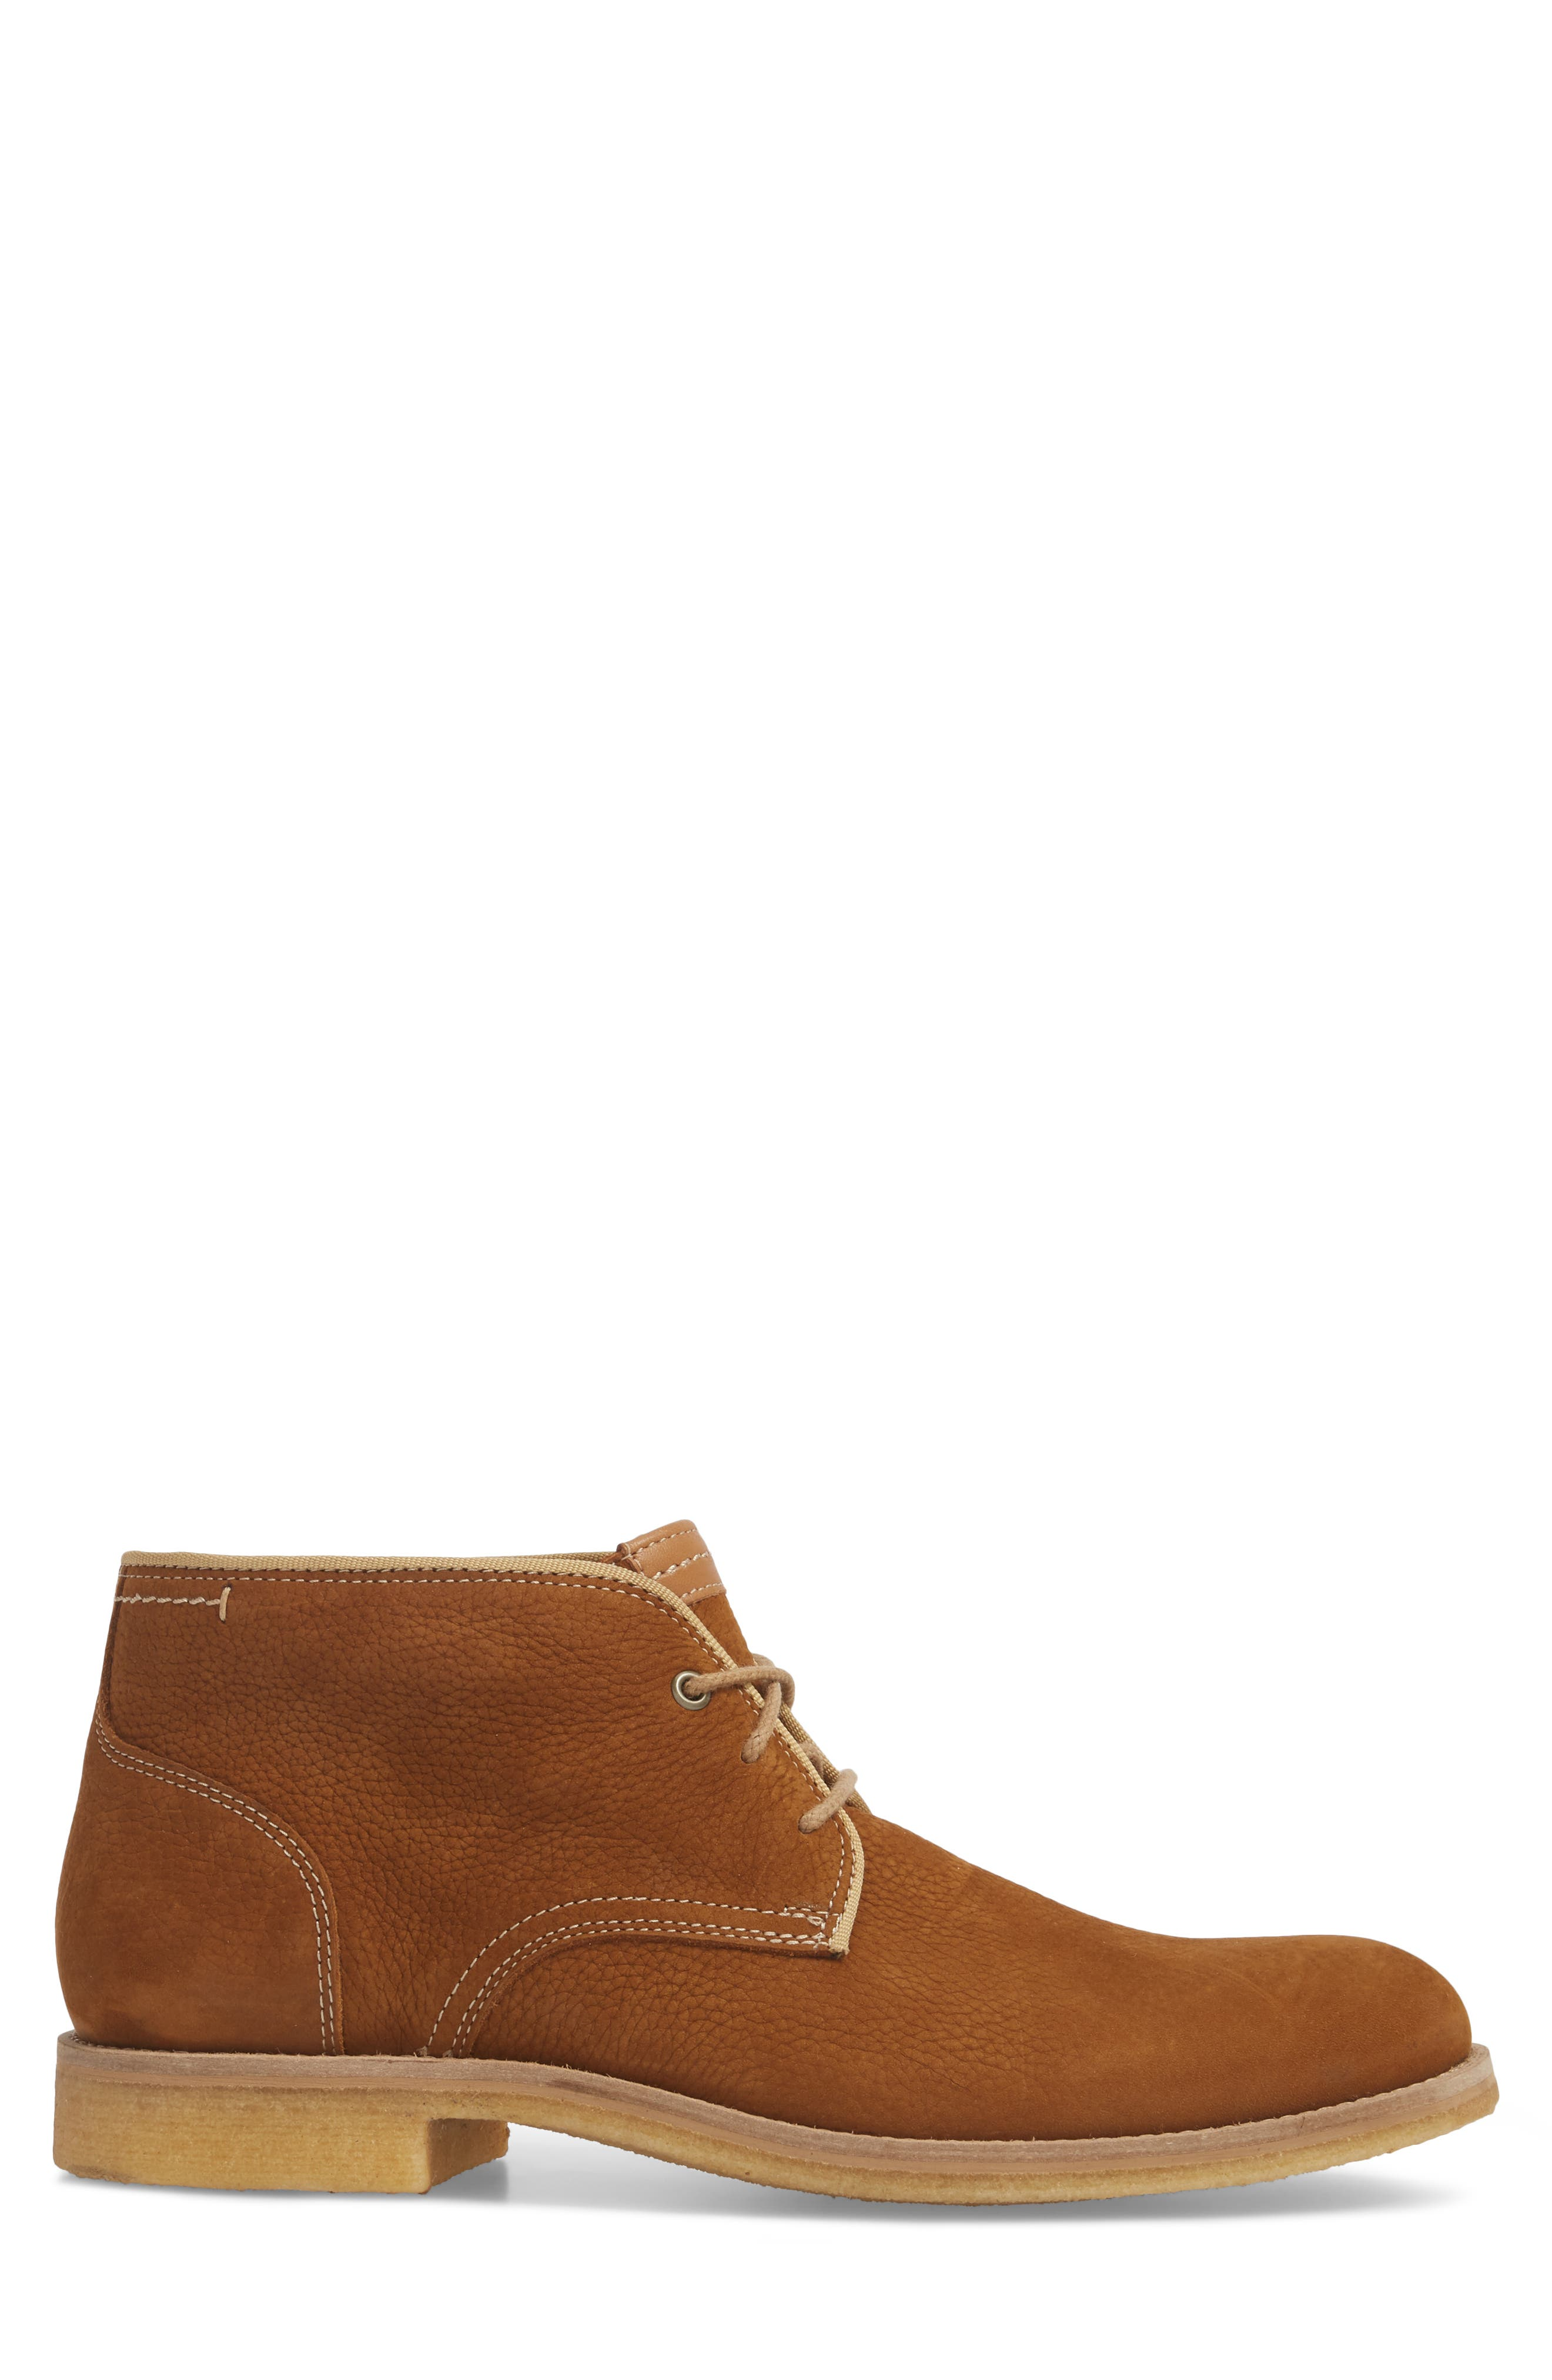 Howell Water Resistant Chukka Boot,                             Alternate thumbnail 3, color,                             Tan Nubuck Leather